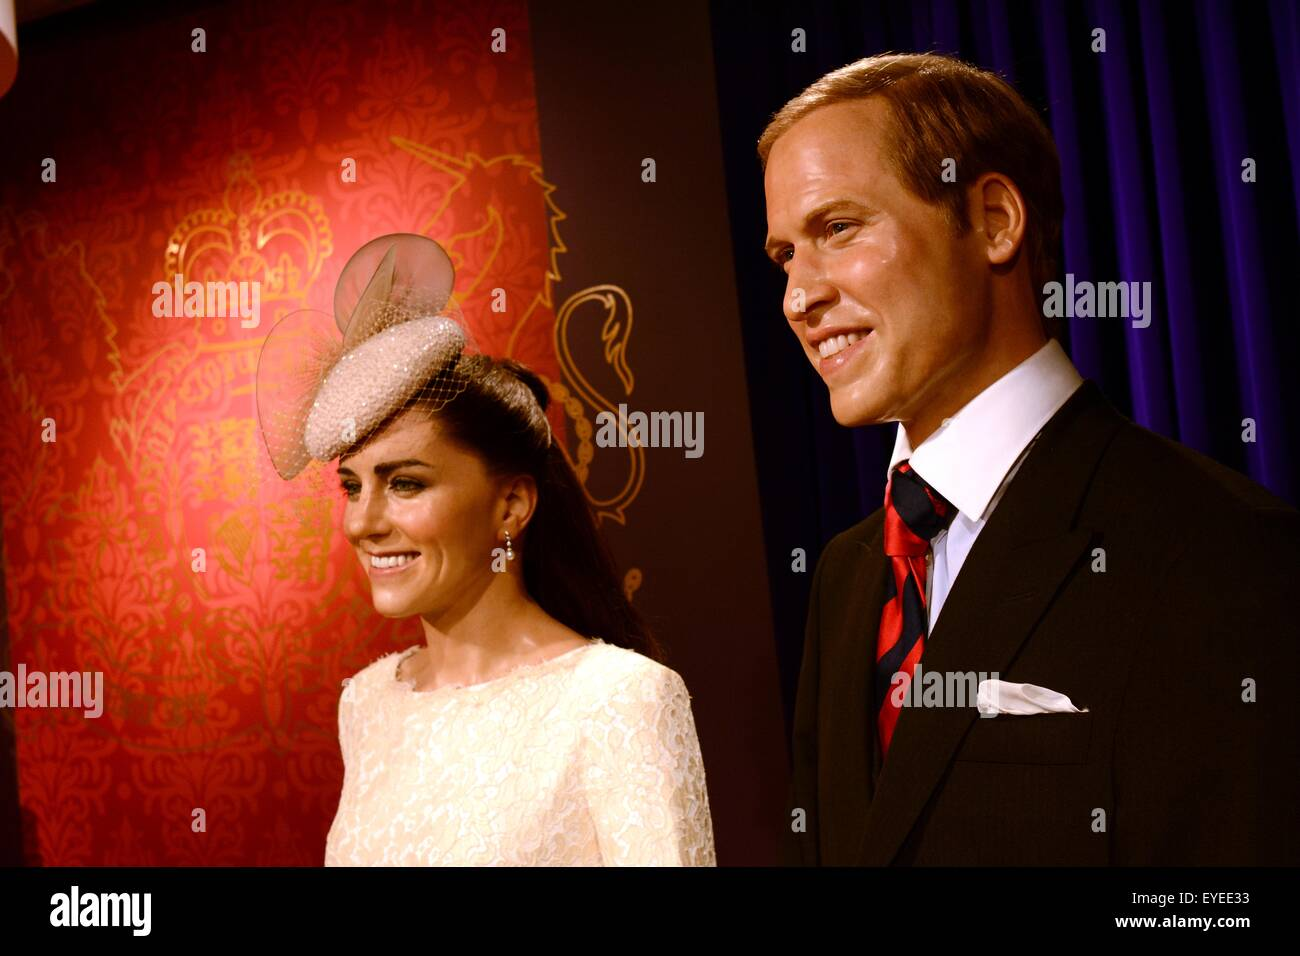 Wax works figures of Prince William and Kate Middleton in Madame Tussauds Tokyo, Japan. - Stock Image